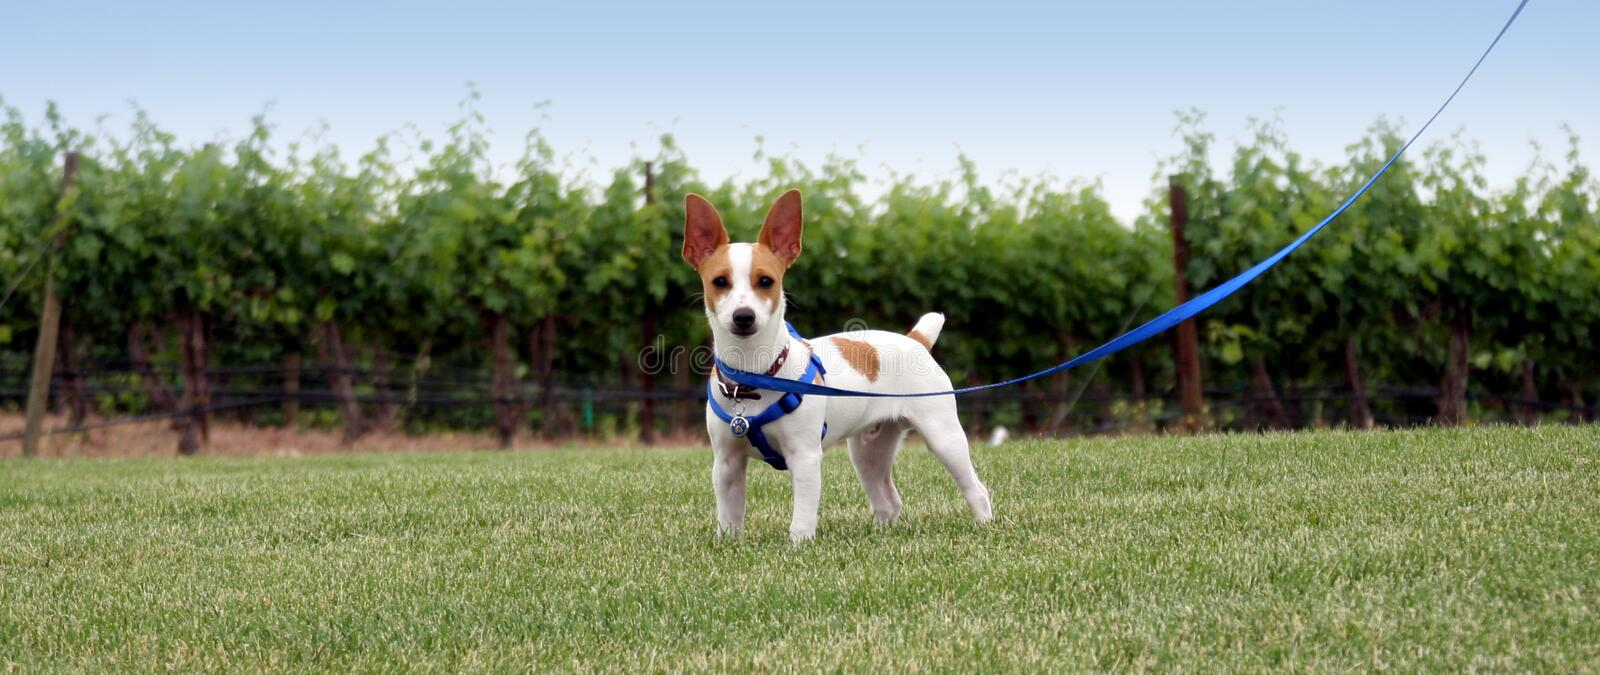 Take me for a walk. A rat terrier going for a walk in a Washington state vineyard stock image